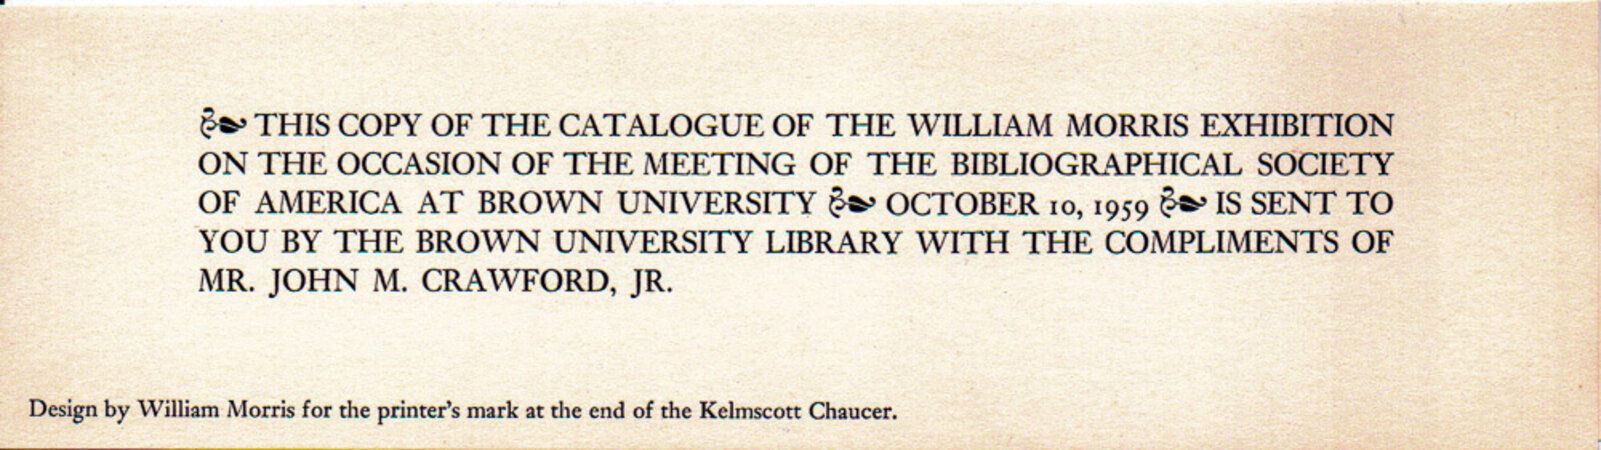 William Morris and the Kelmscott Press. An Exhibition held in the Library of Brown University, Rhode Island from Oct. 9 to Dec 31, 1959. by KELMSCOTT PRESS & WILLIAM MORRIS. BROWN UNIVERSITY LIBRARY.